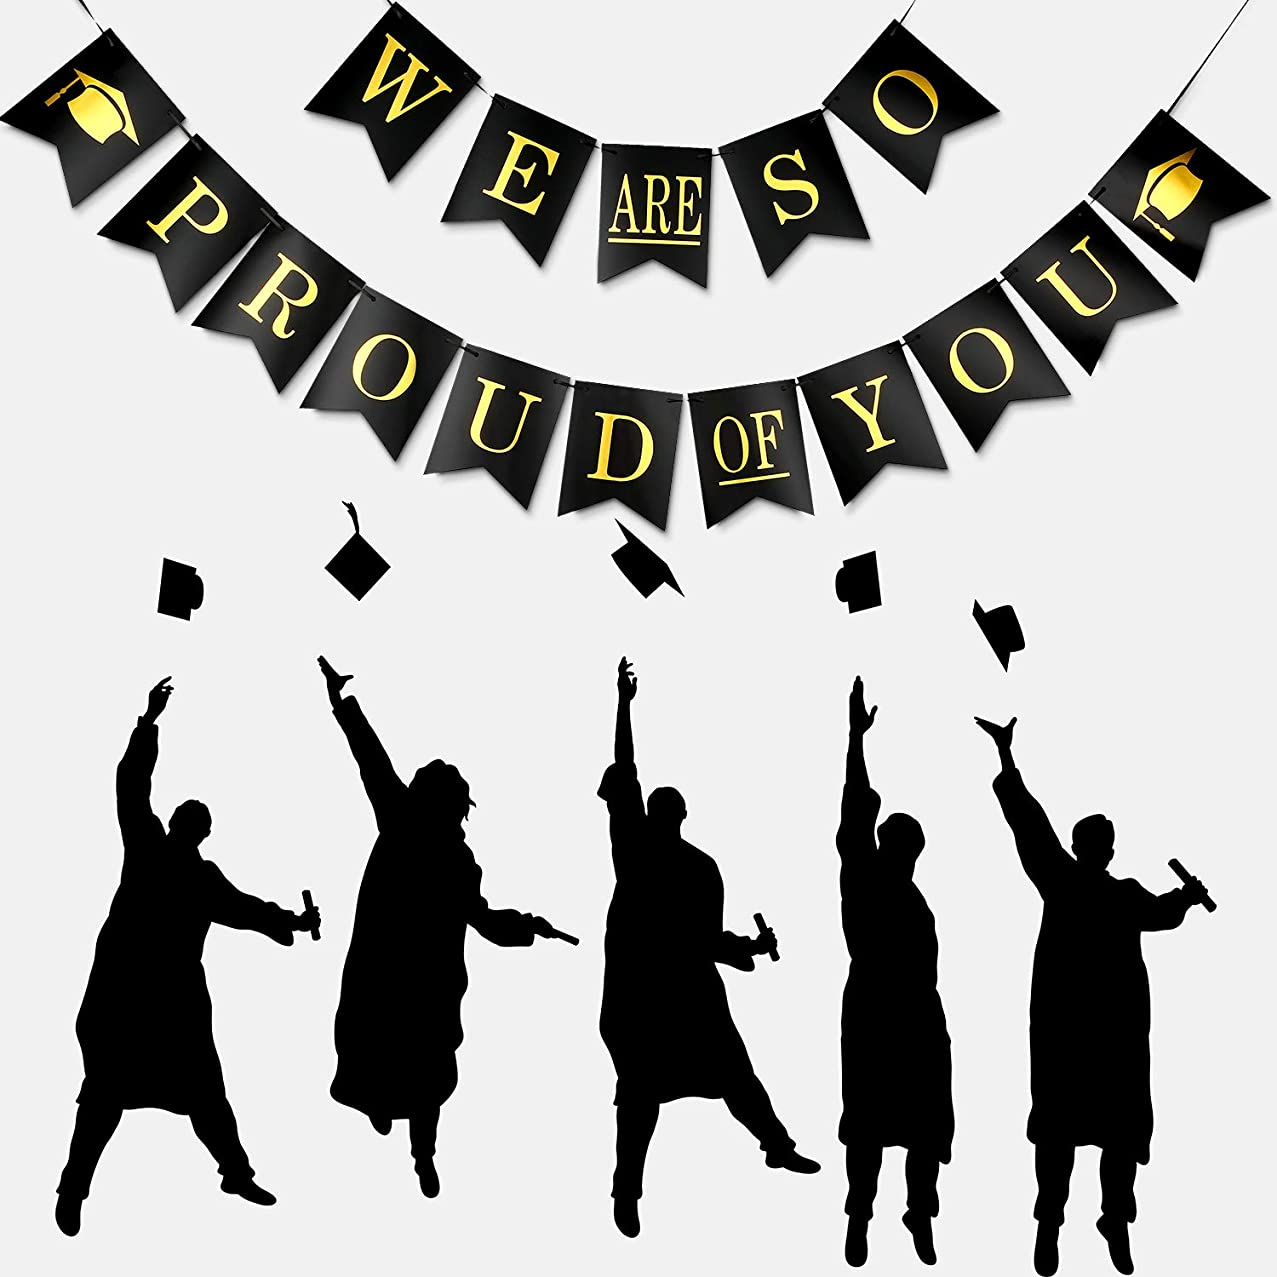 We are So Proud of You Banner Graduation Party Banner Proud of You Sign Banner for 2019 Graduation Parties Grad Party Decoration (Set 1)